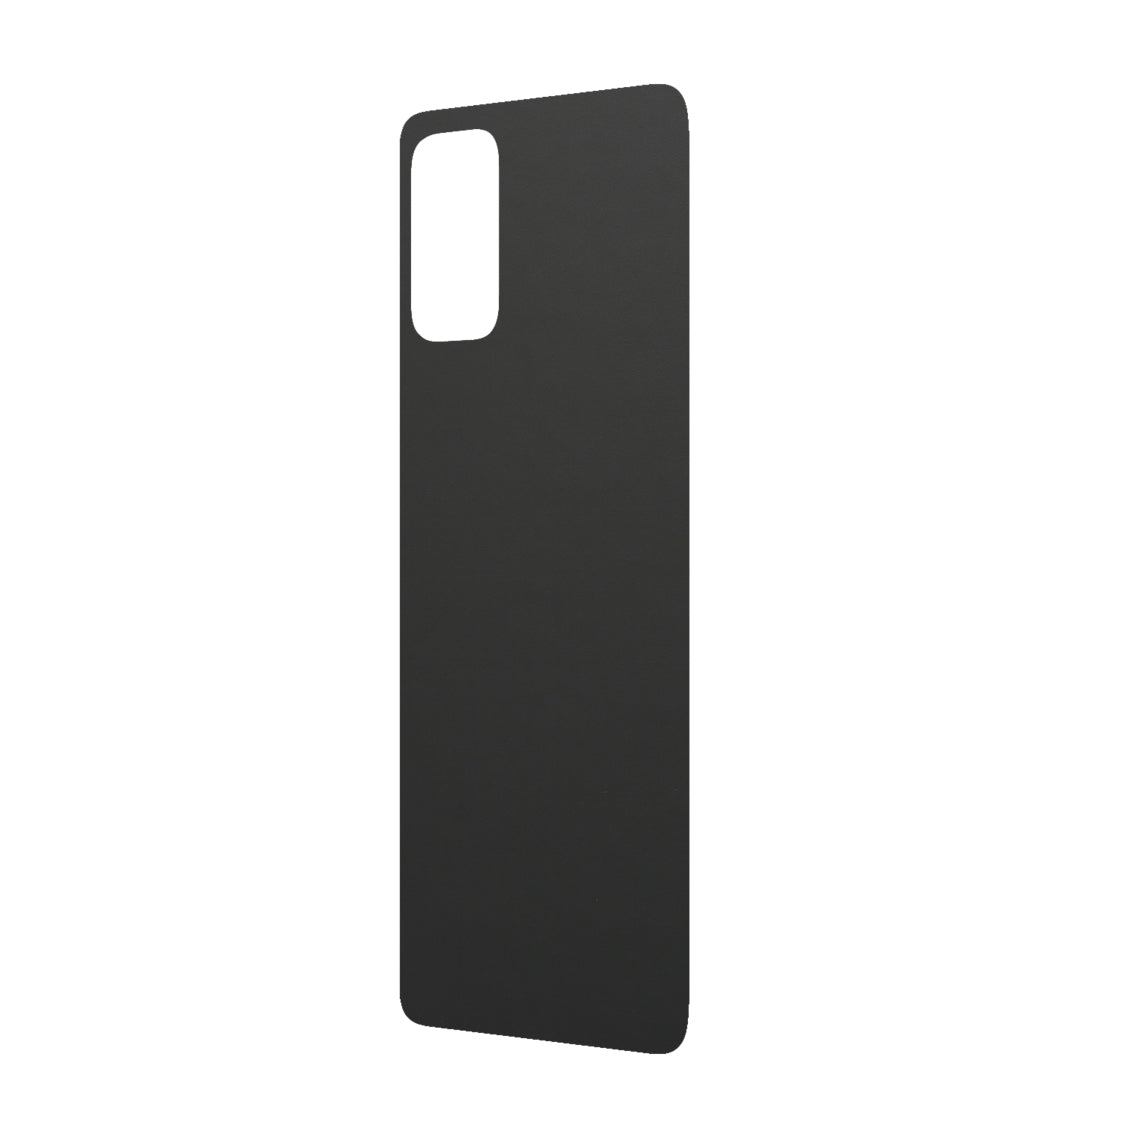 RhinoShield Impact Skin For Samsung S20 Plus - Matte Black - Macintosh Addict